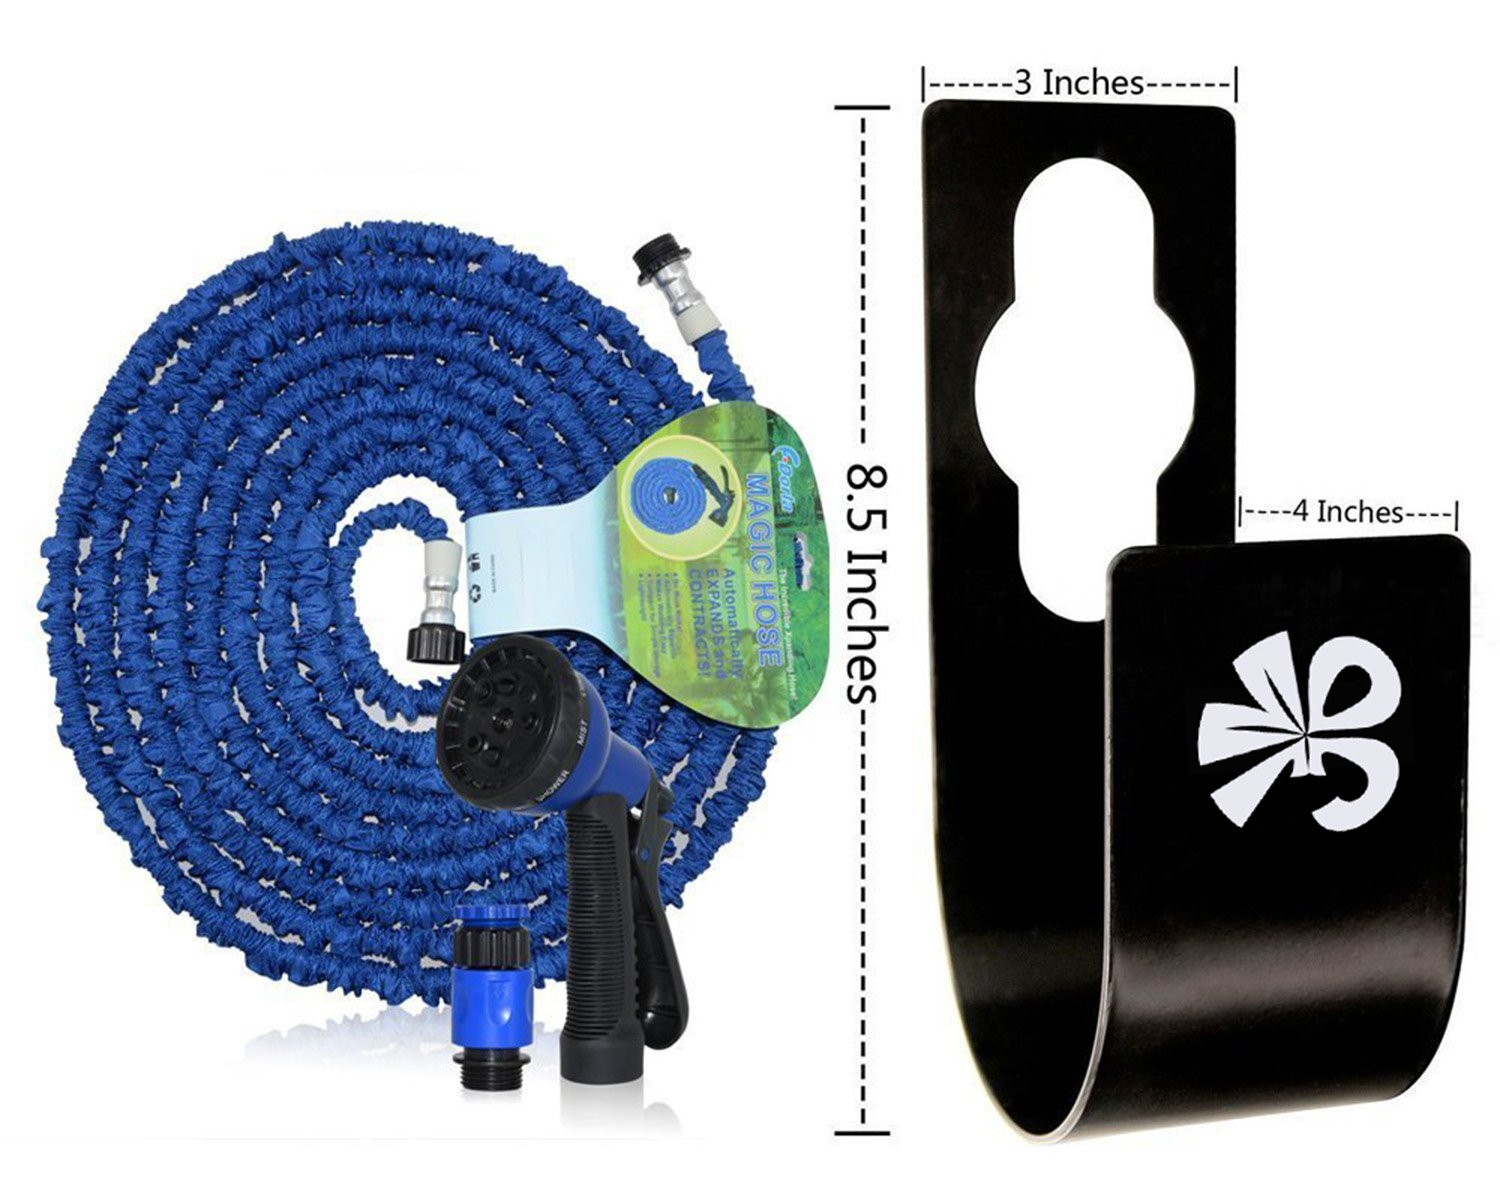 Garden Hose Holder wall mount-Durable and 30m/100ft Heavy Duty Long Lasting Steel Hose Hanger with faucet Conveniently store your hose using +2 screws -keep your backyard neat and clean